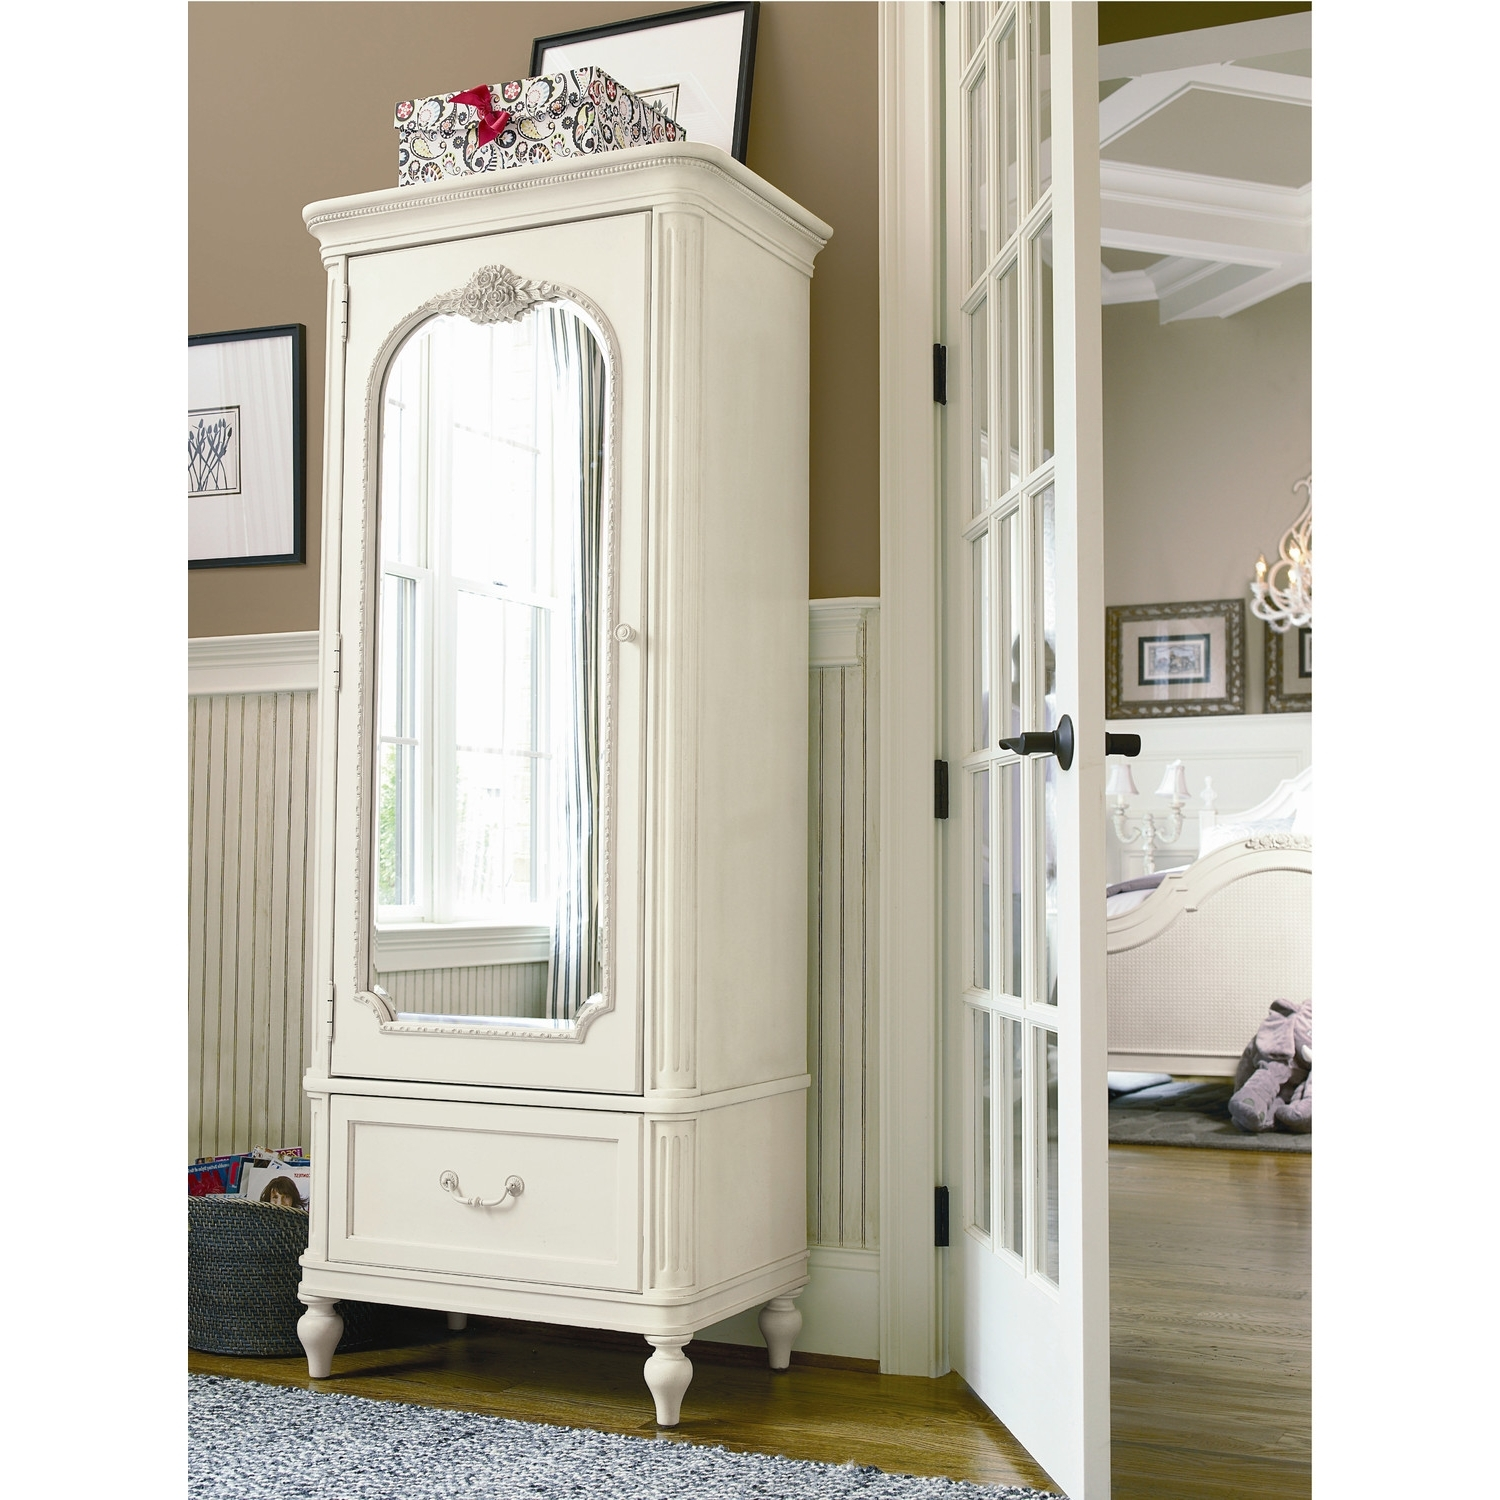 Fashionable Bedroom: Antique Interior Storage Design With Wardrobe Armoire Intended For White Wicker Wardrobes (View 6 of 15)